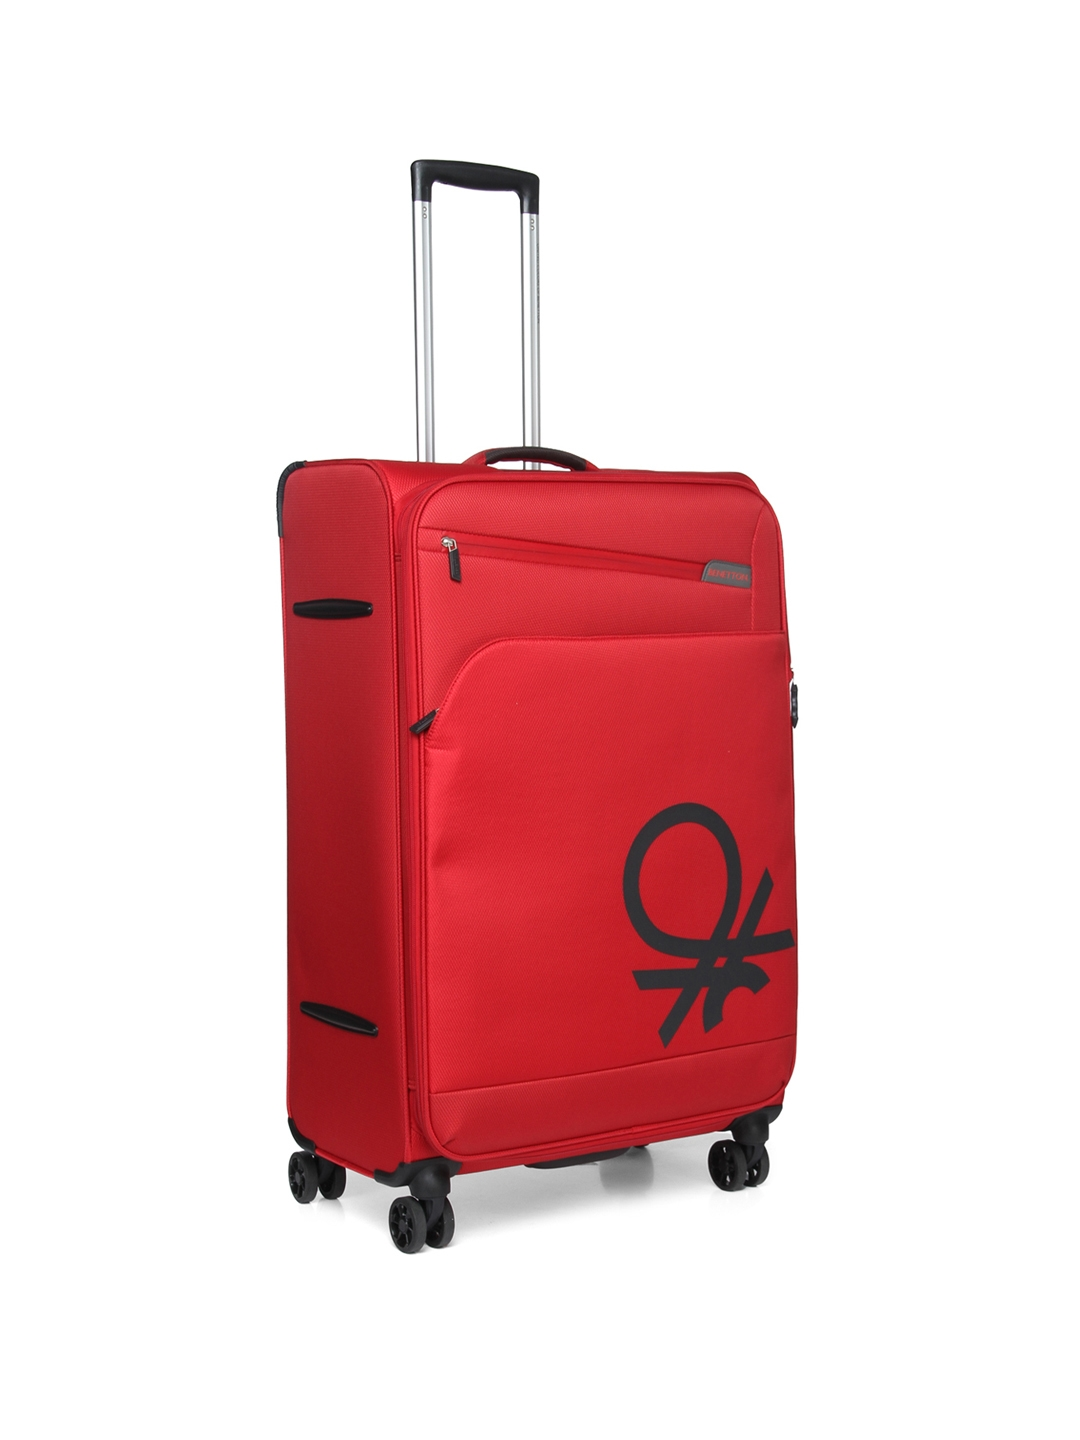 53892faed1fa Buy United Colors Of Benetton Unisex Red Large Trolley Suitcase ...